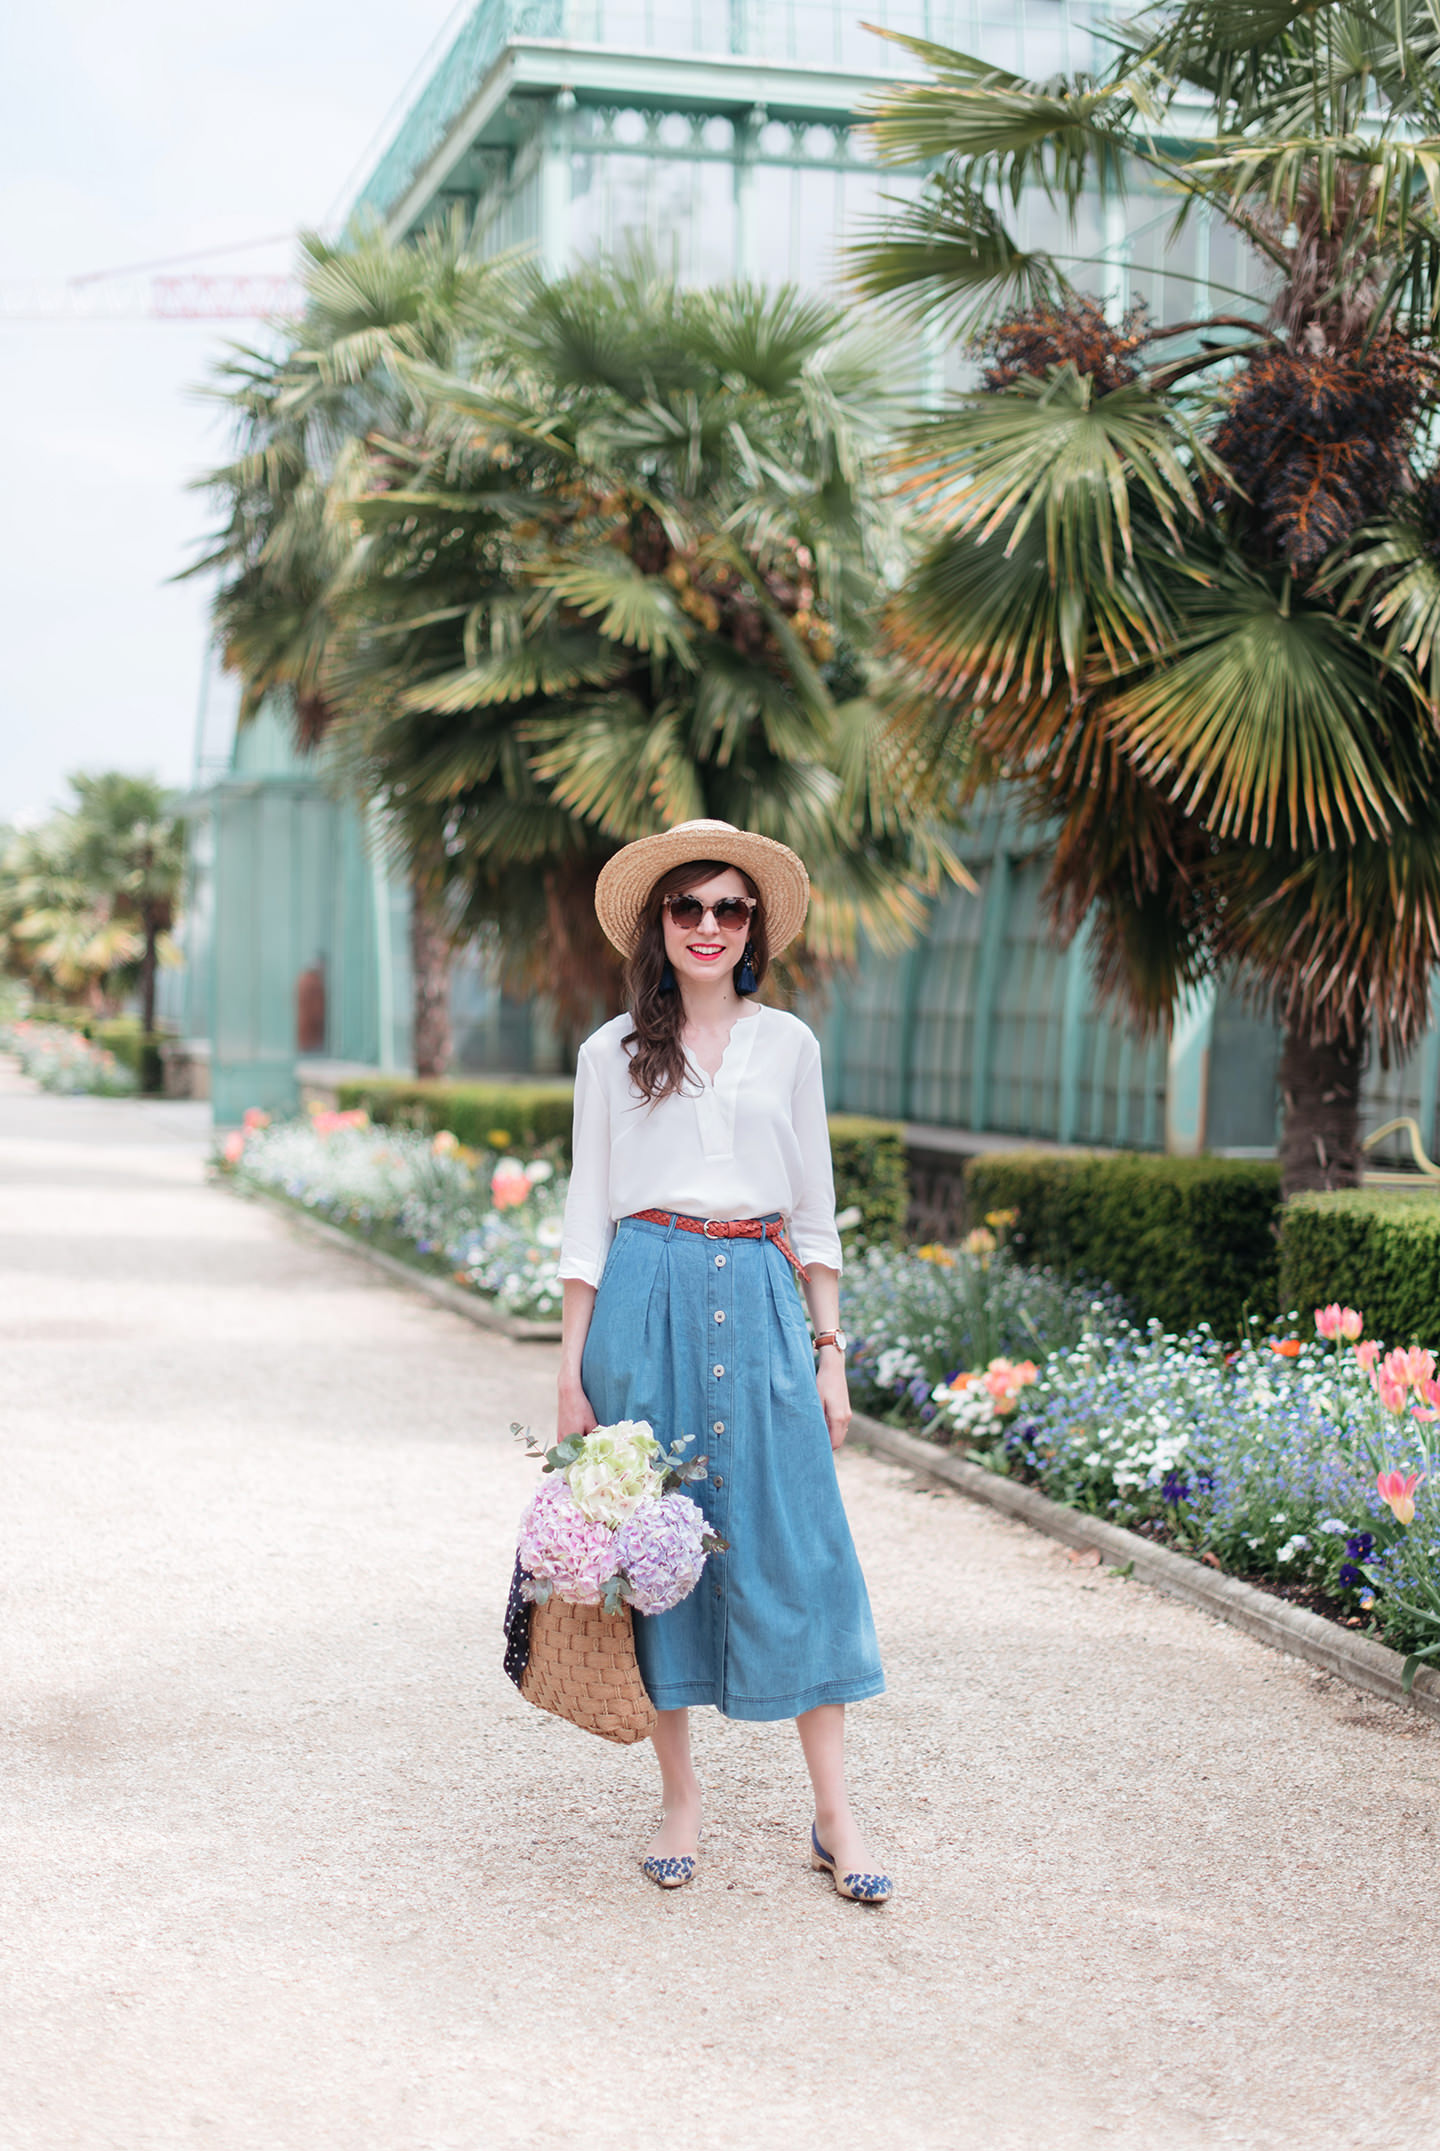 Blog-Mode-And-The-City-Looks-Jardin-Serres-Auteuil-Devernois-2